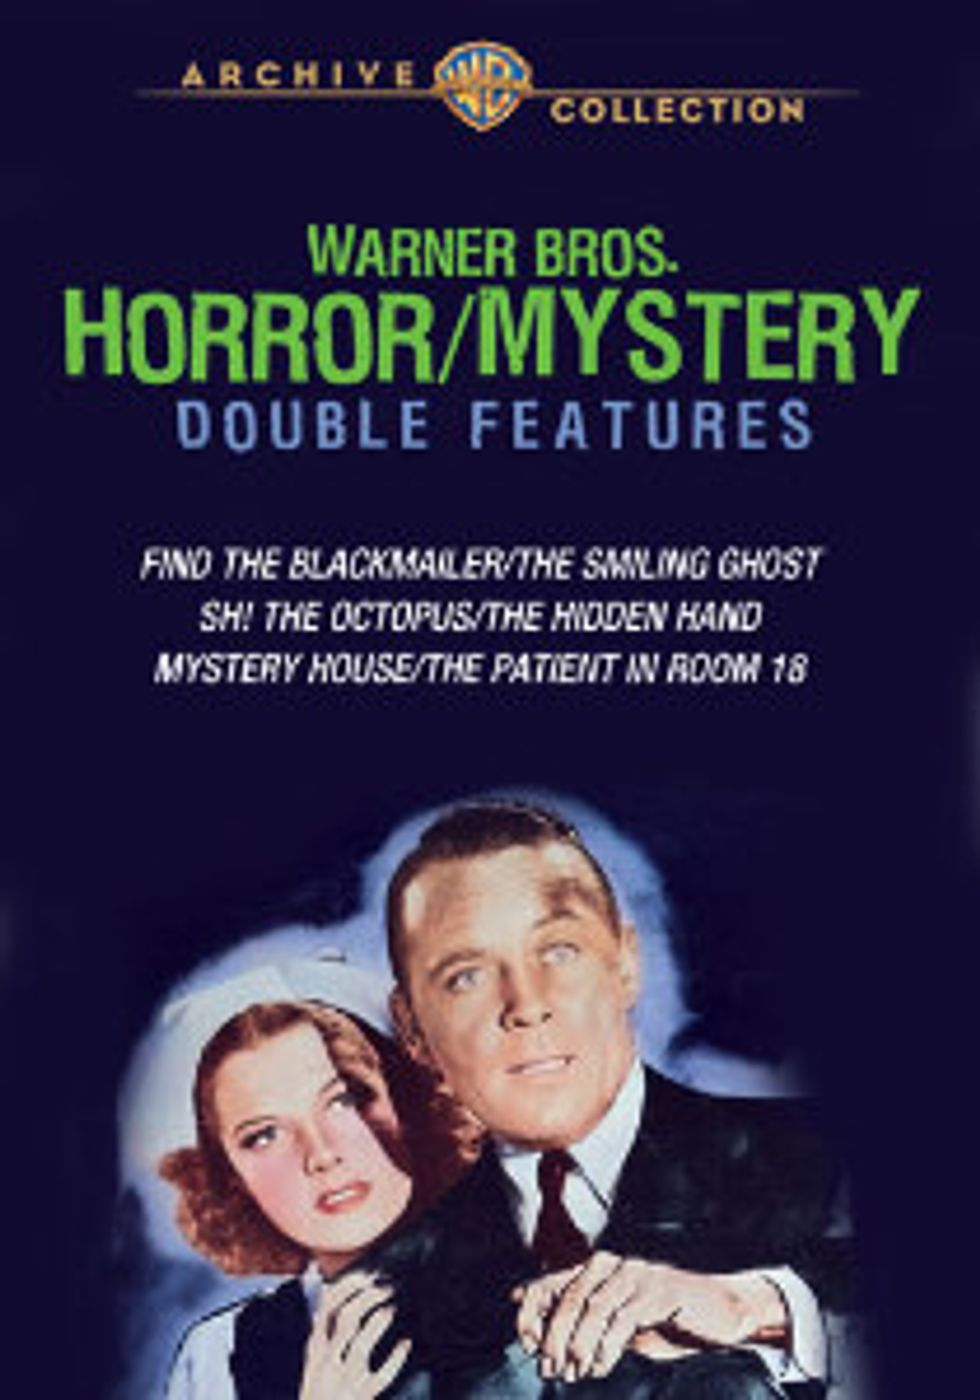 Warner Brothers Horror/Mystery Double Features On DVD